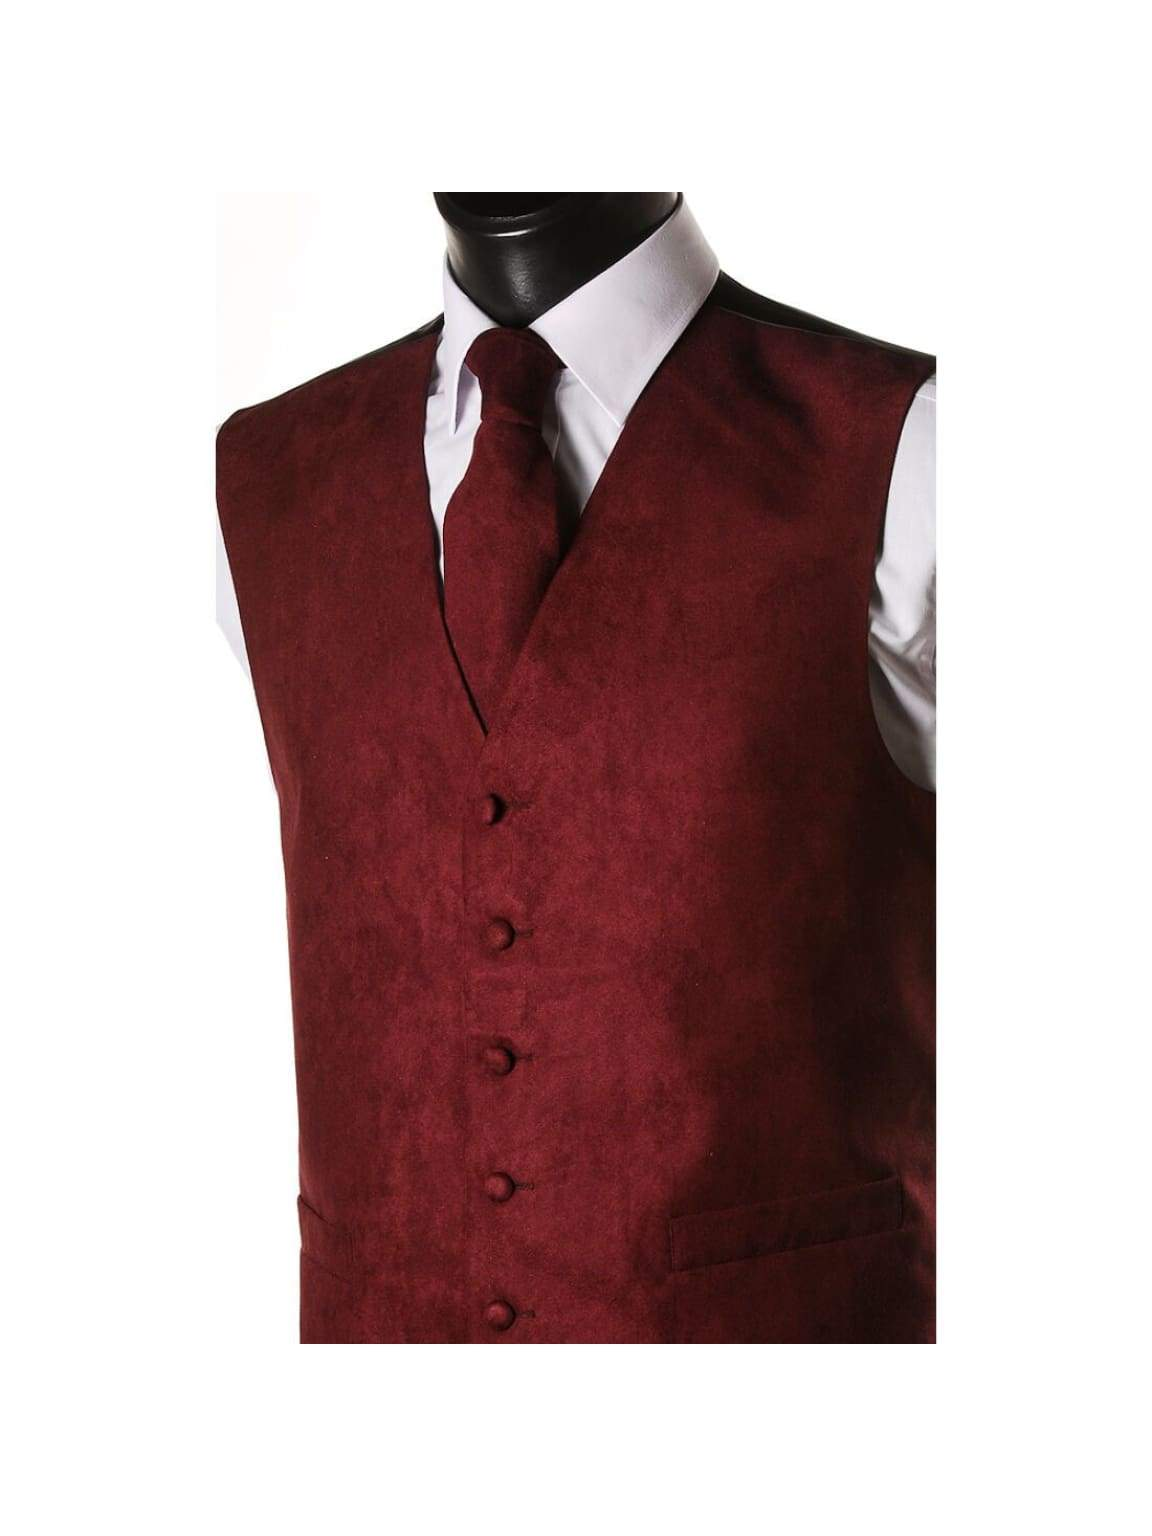 L A Smith Wine Suede Look Waistcoat - S - Suit & Tailoring